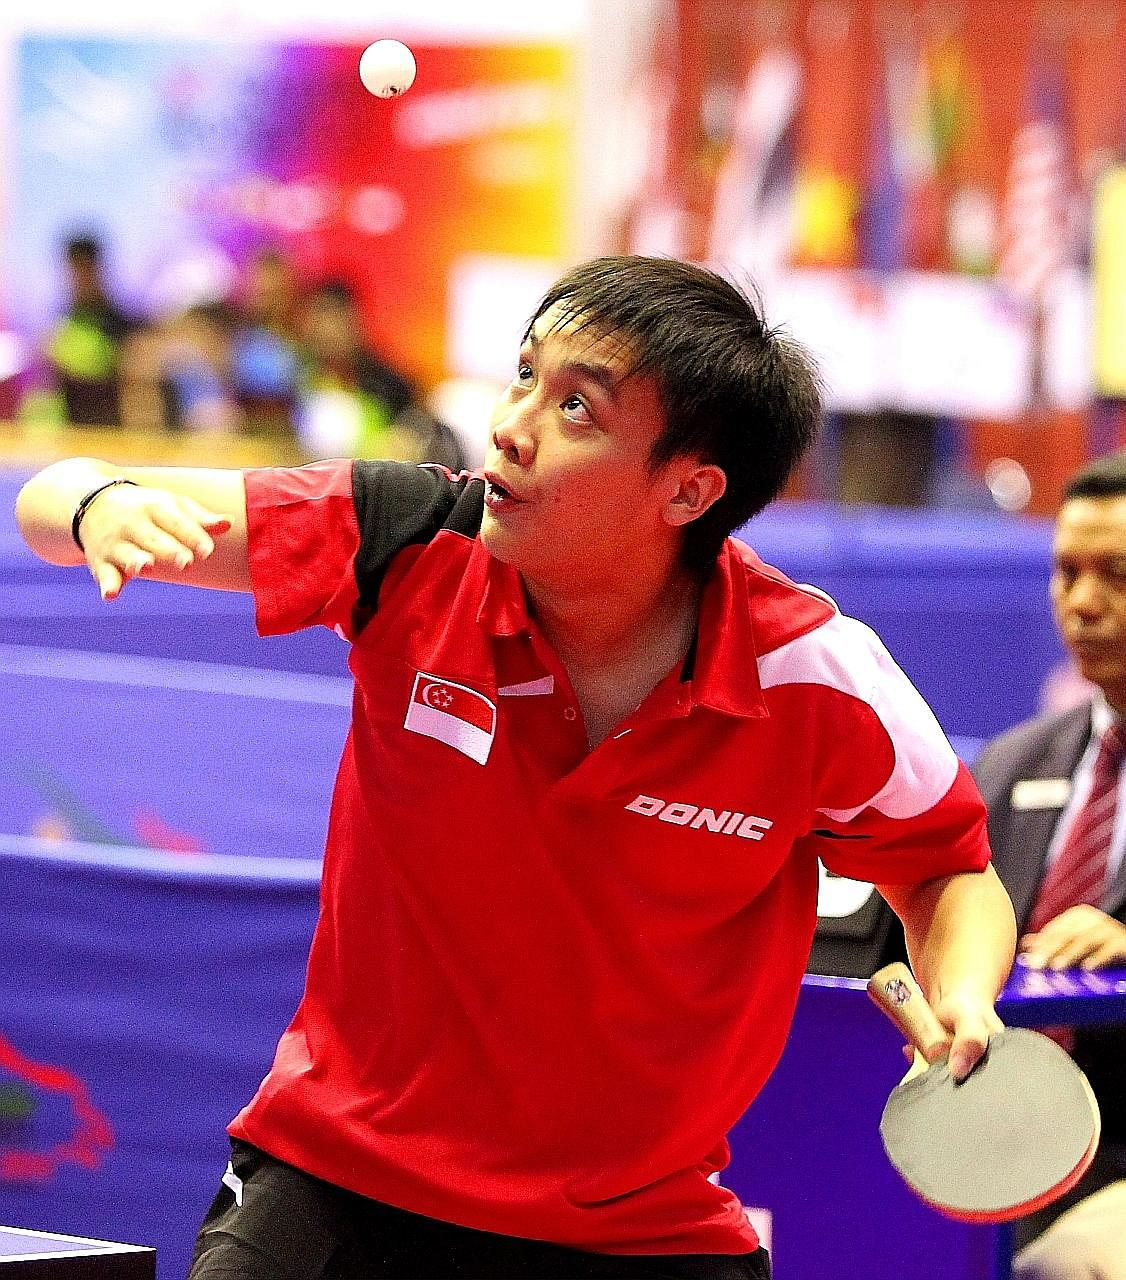 Singapore table tennis player Pang Xuejie hopes to win at least one gold medal and expects India, England and Nigeria to be the Republic's main rivals in the men's team competition.